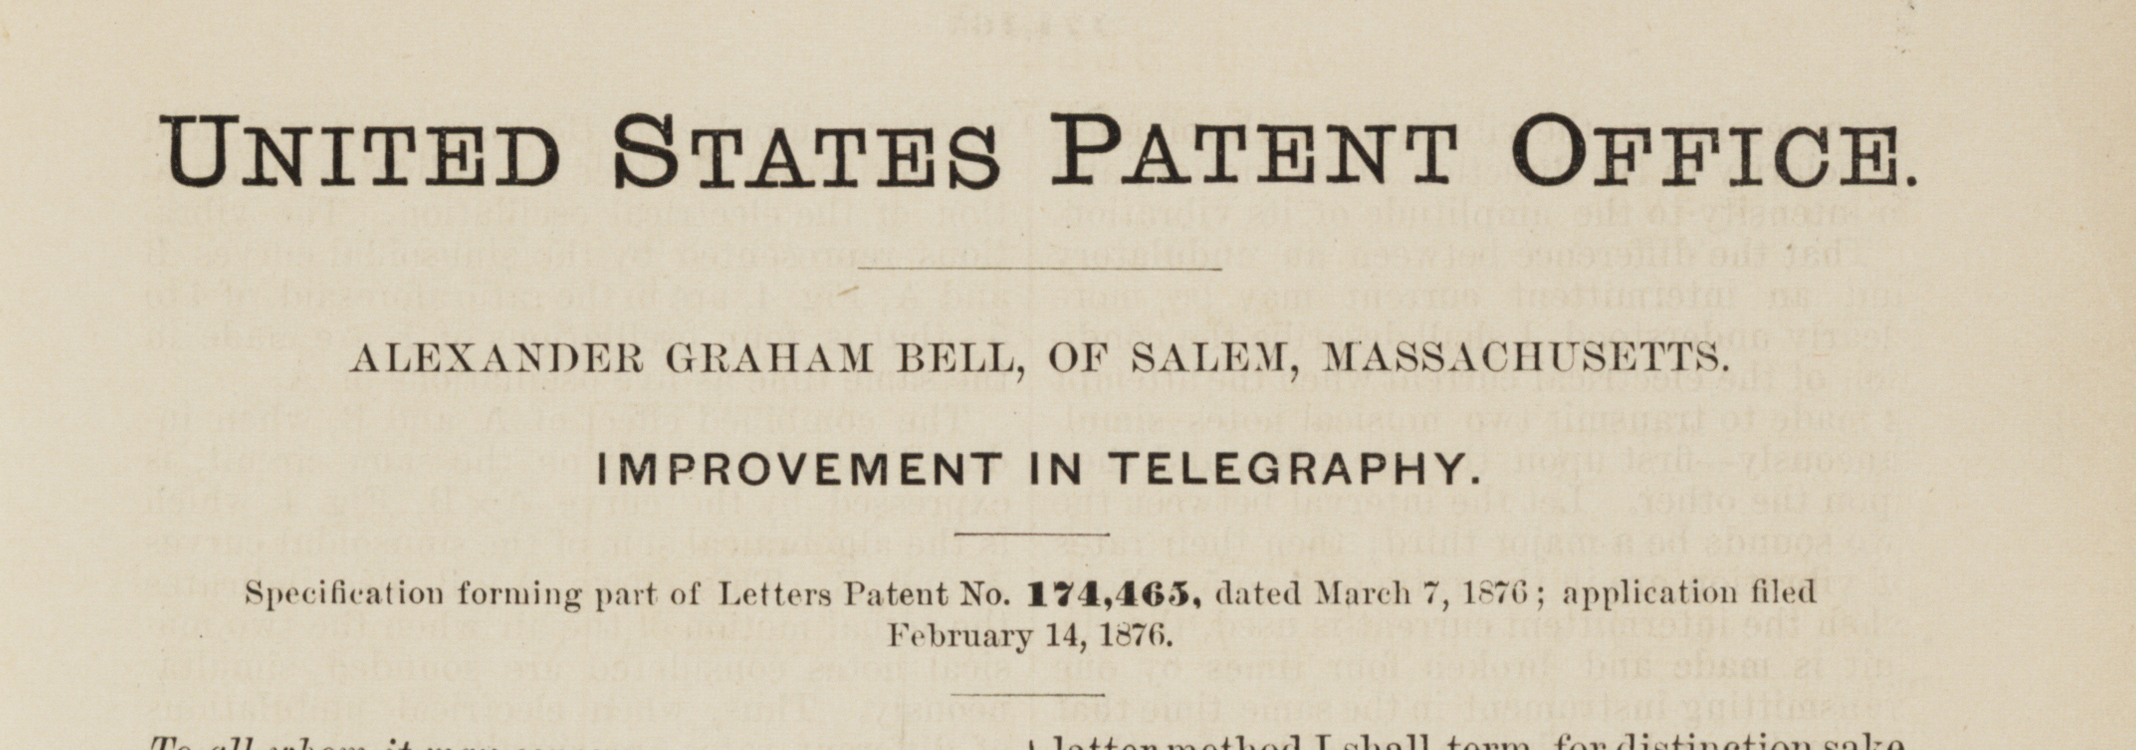 Alexander Graham Bell, Patent for telephone, March 7, 1876. (Gilder Lehrman Coll